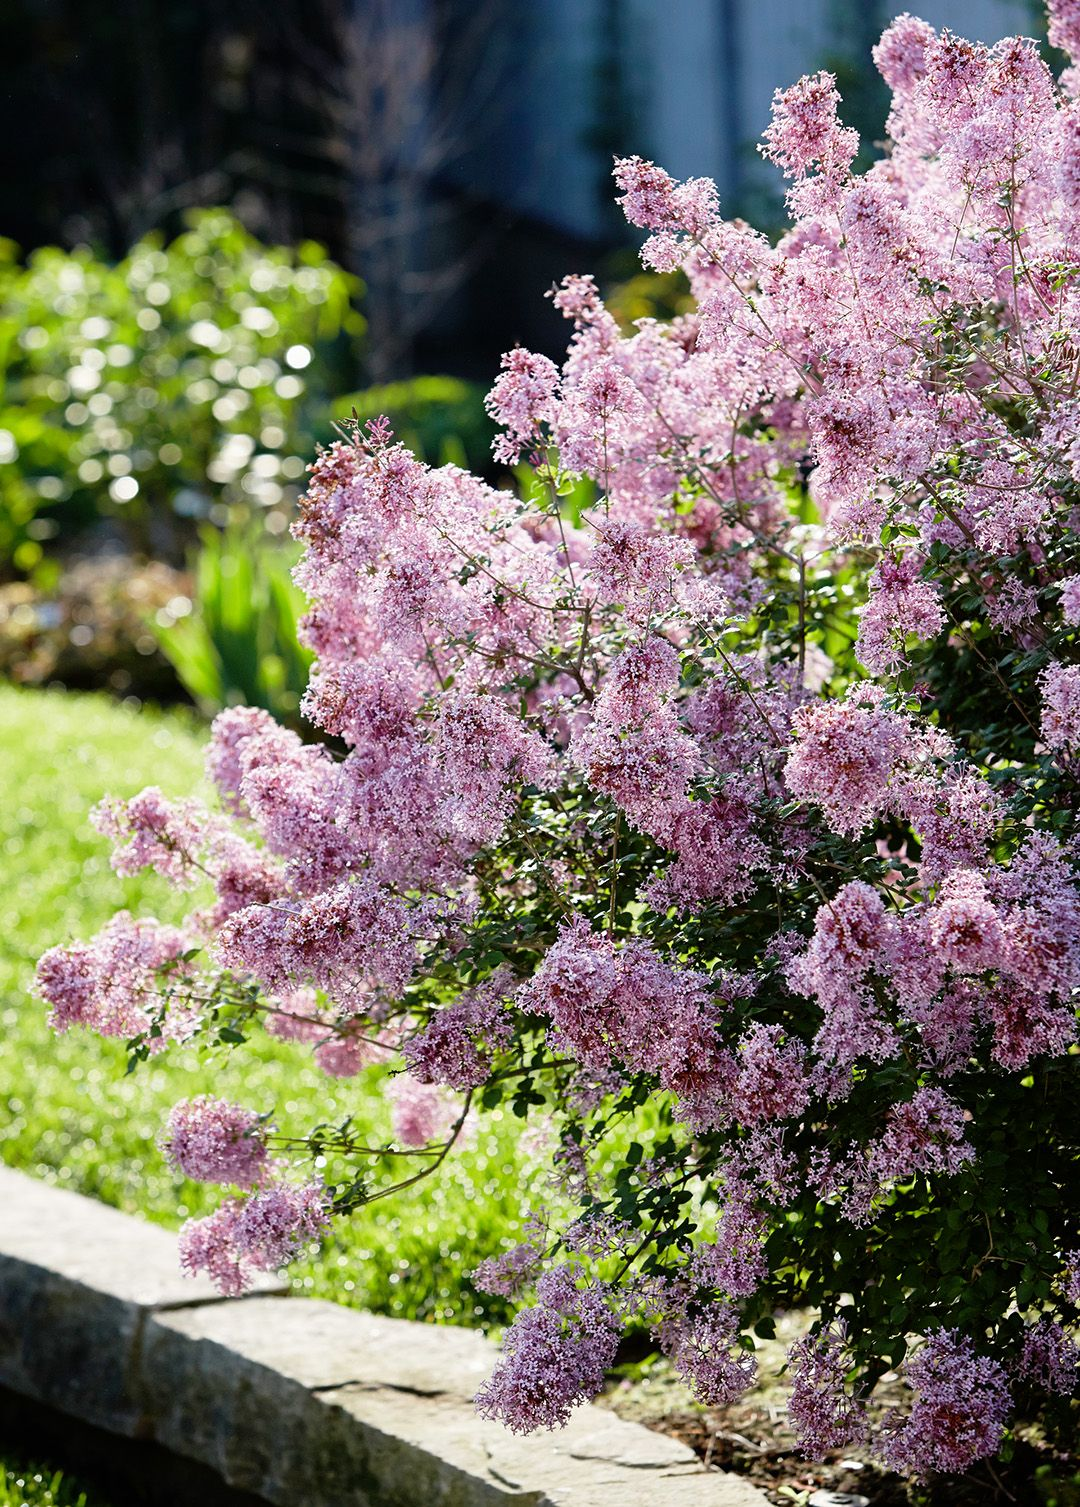 Meet The Bloomerang A Lilac That Blossoms Twice Each Season Lilac Gardening Bloomerang Lilac Flower Landscape